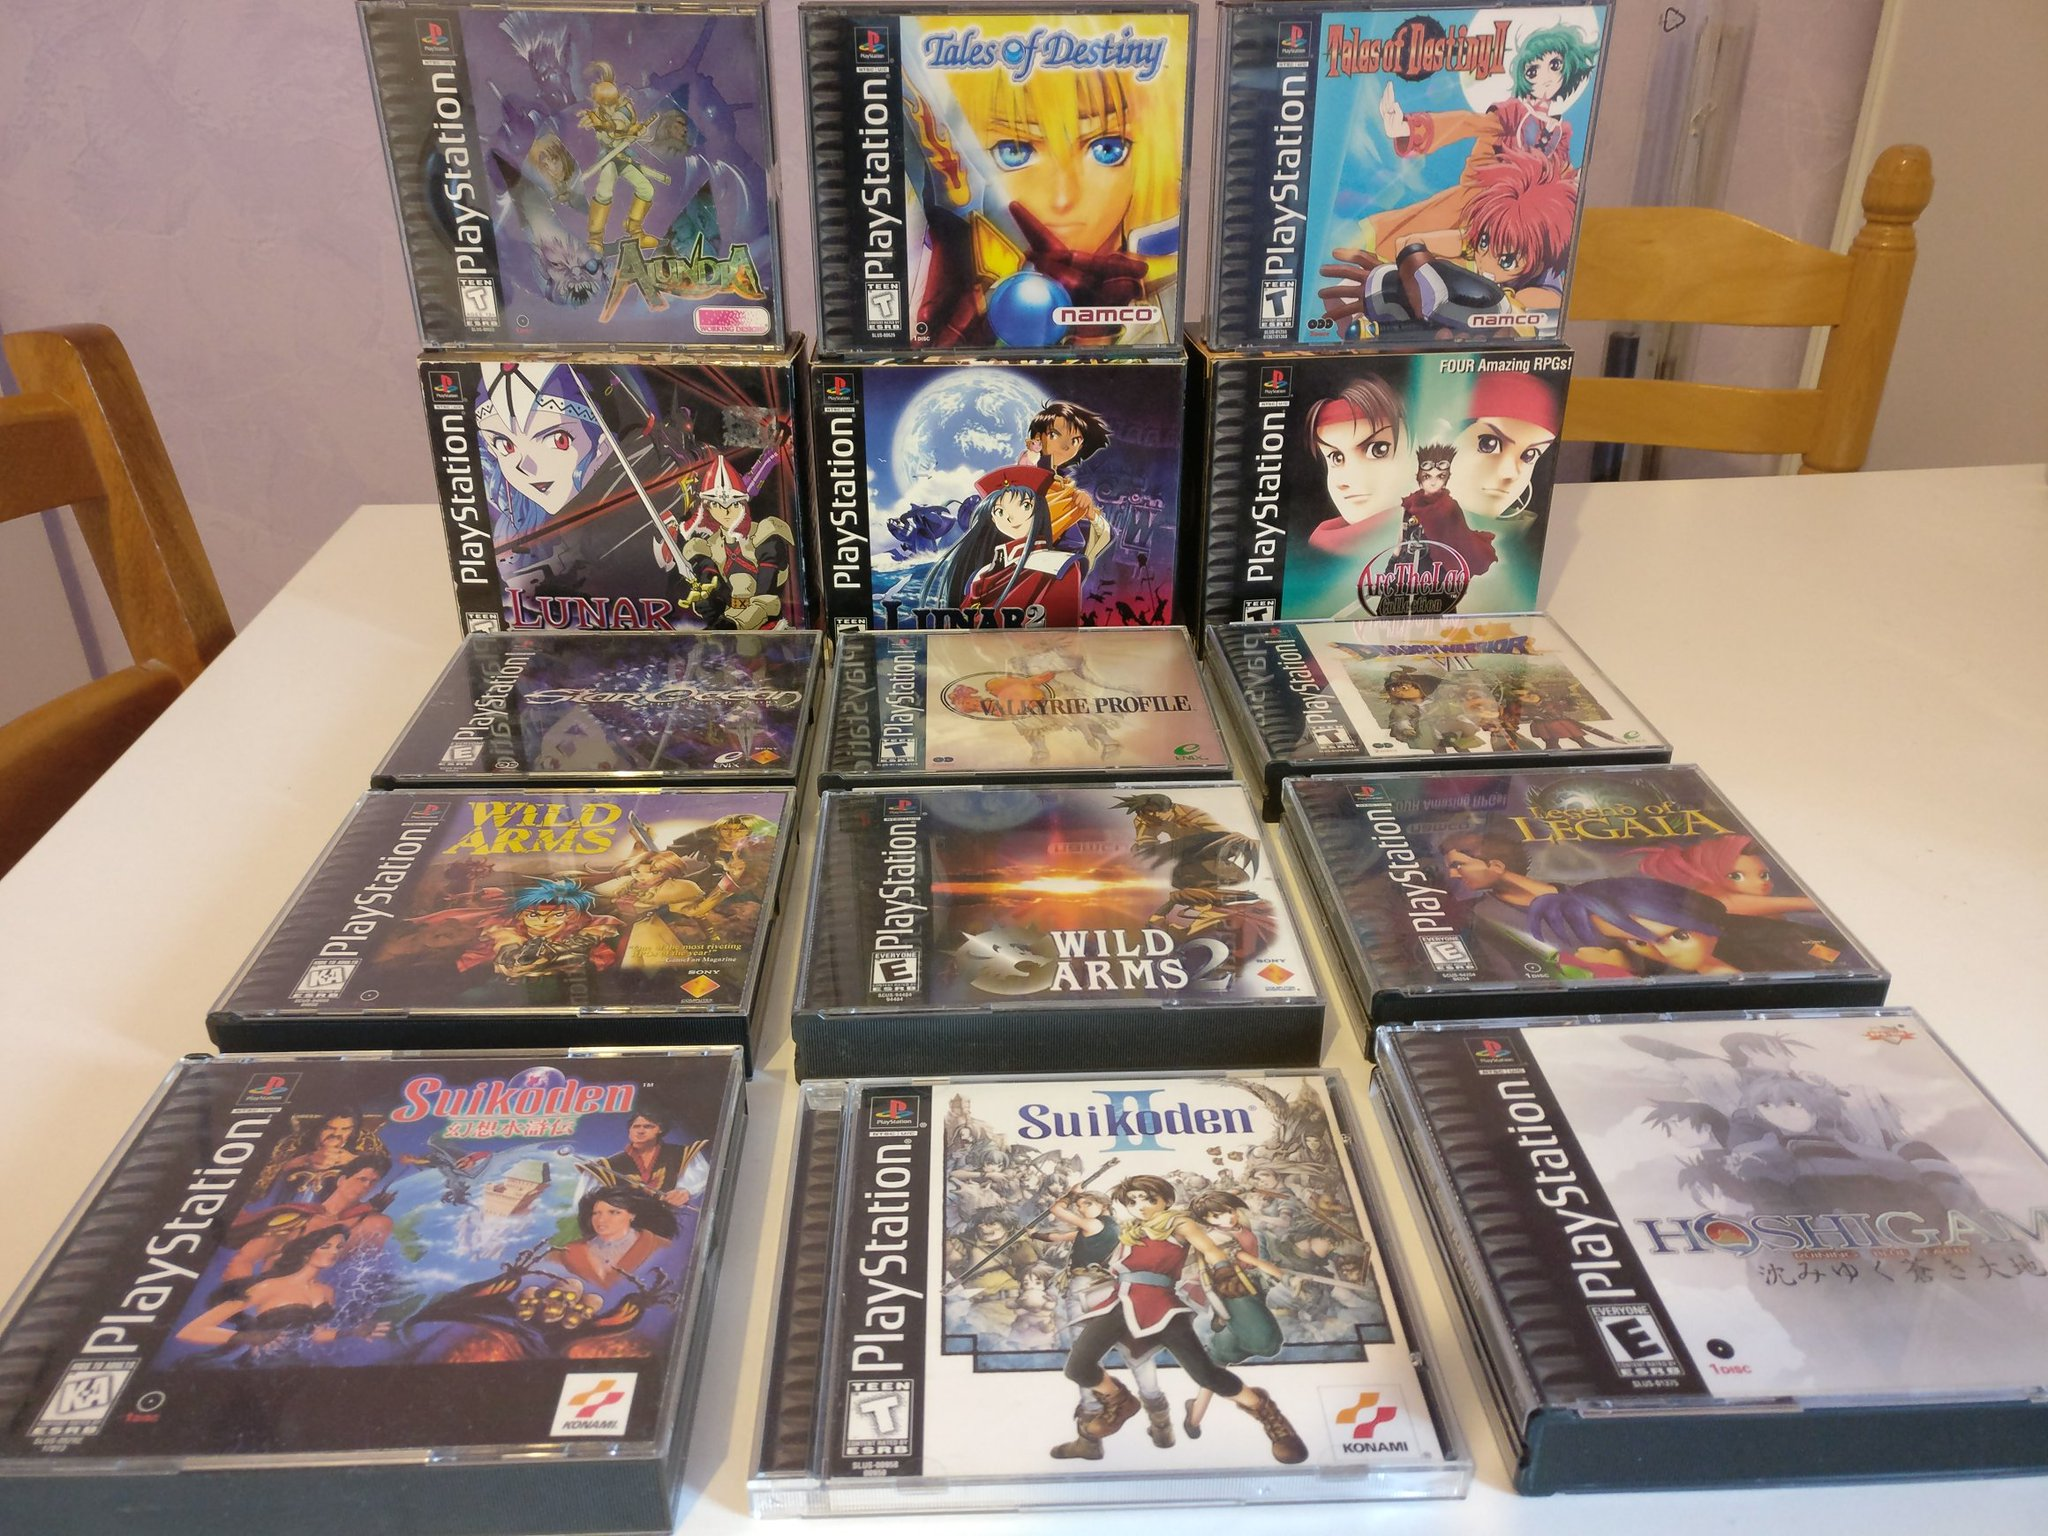 RPG Playstation 1